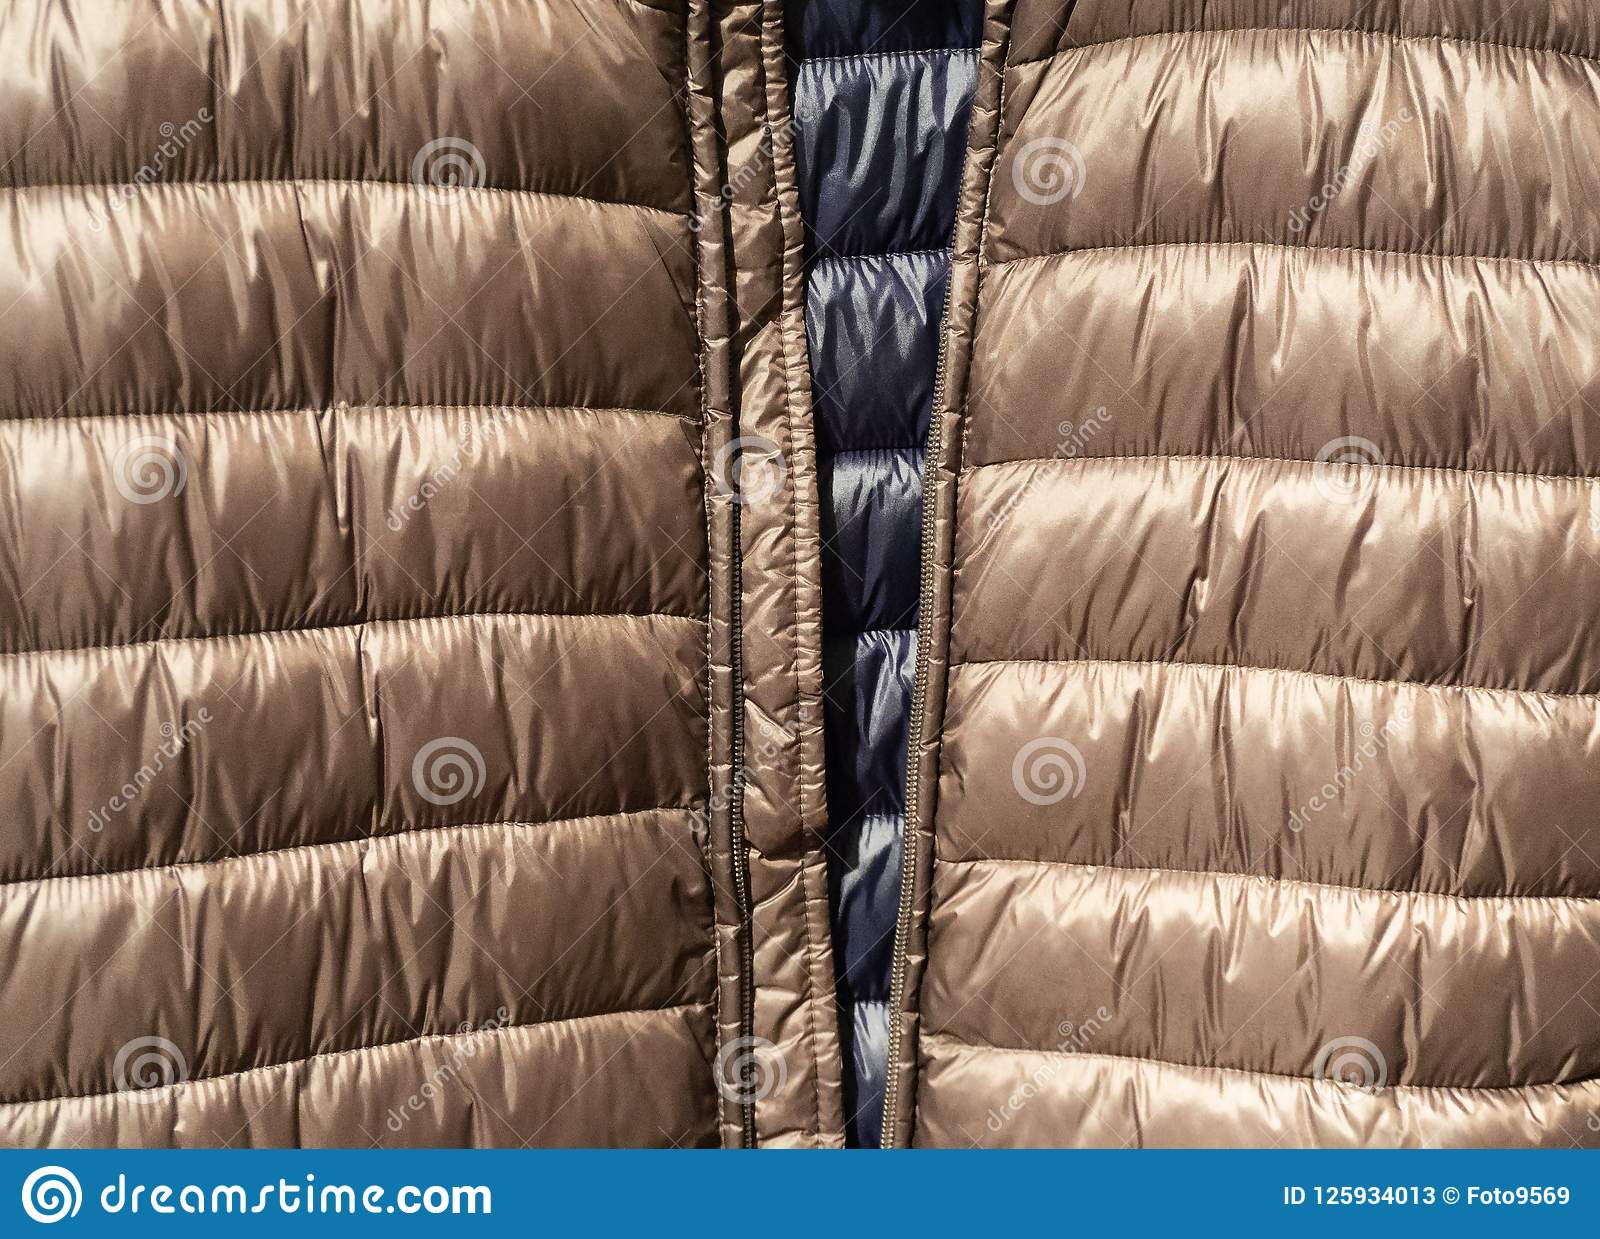 Texture and background of Down jackets fabric